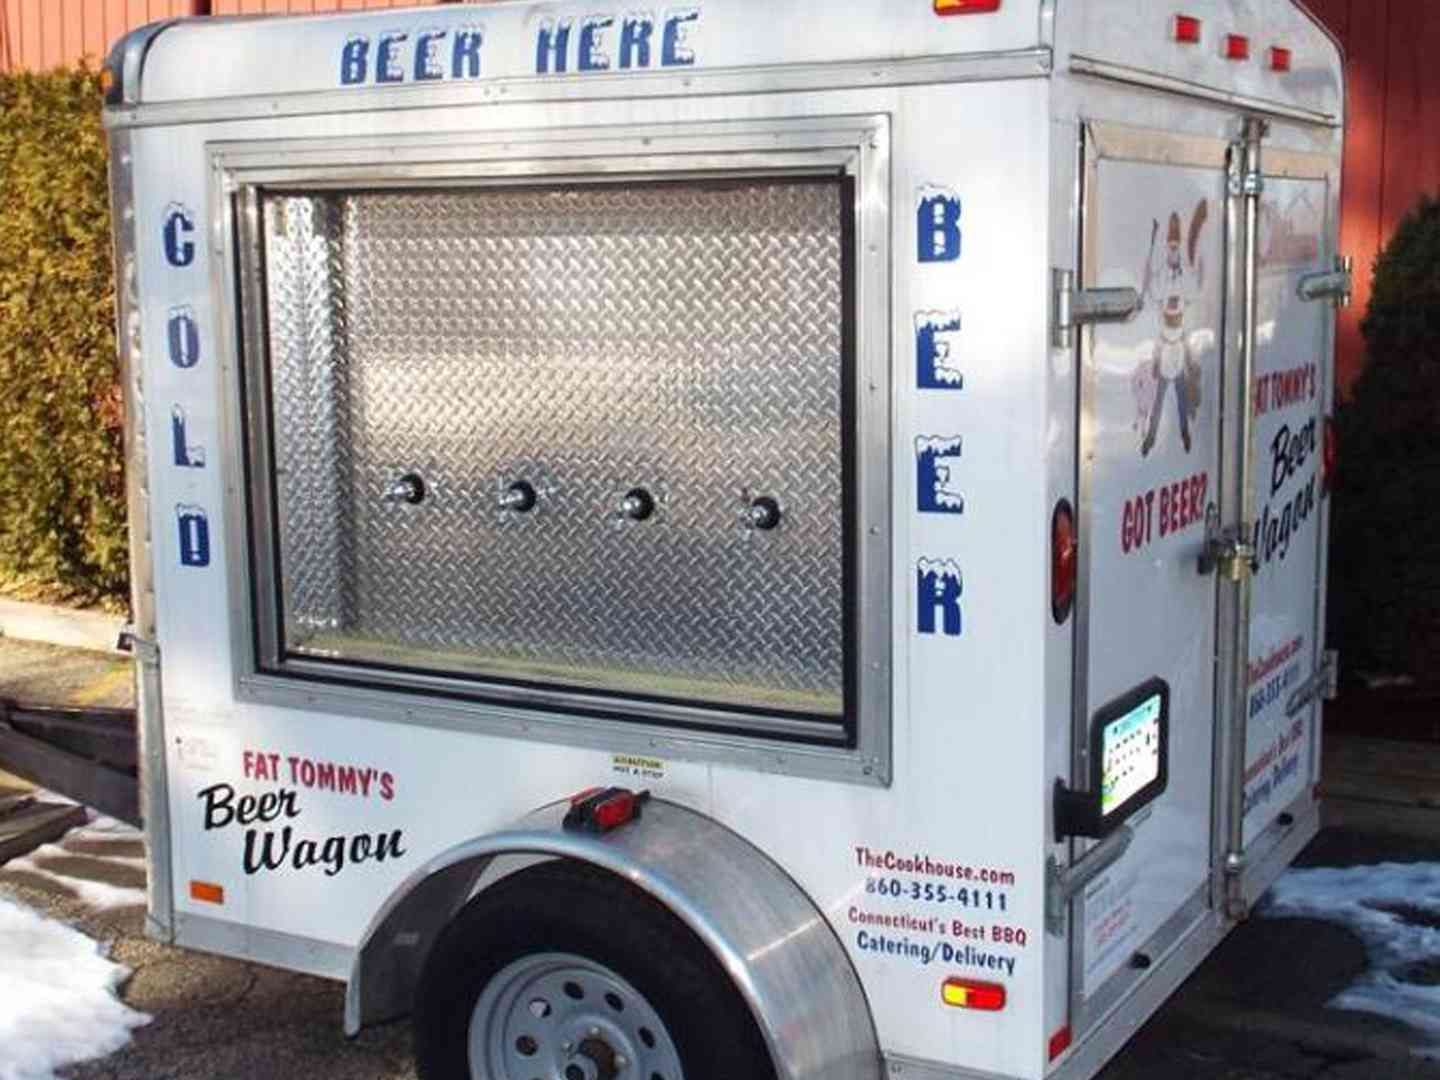 Fat Tommy's Beer Wagon